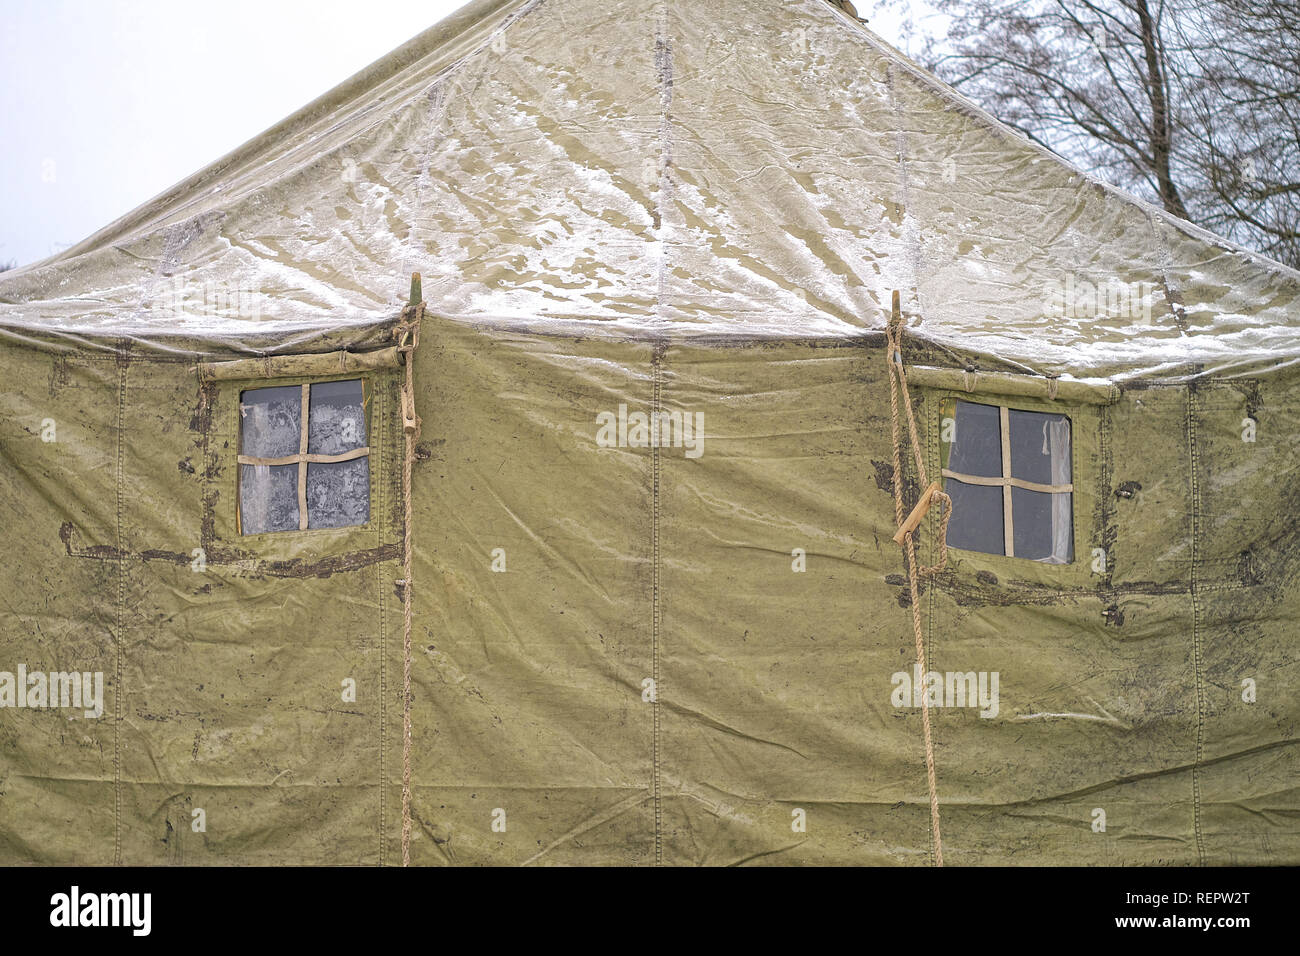 two windows military tents in winter. chimney smoke heating tents. canvas tent. russian style. & two windows military tents in winter. chimney smoke heating tents ...